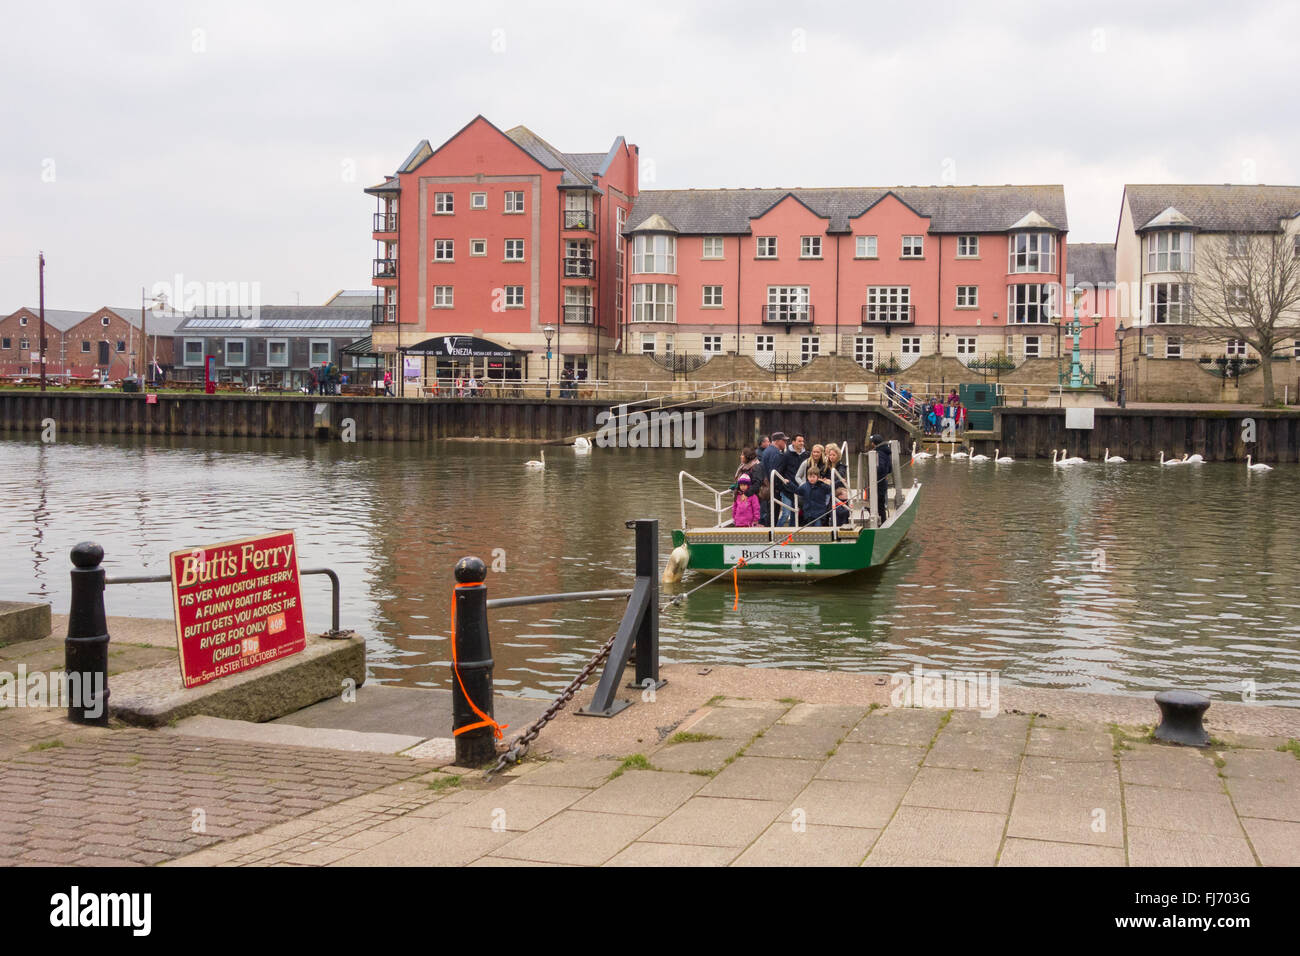 Exeter Quay - Butts Ferry - a hand-operated pedestrian cable ferry that crosses the River Exe Stock Photo